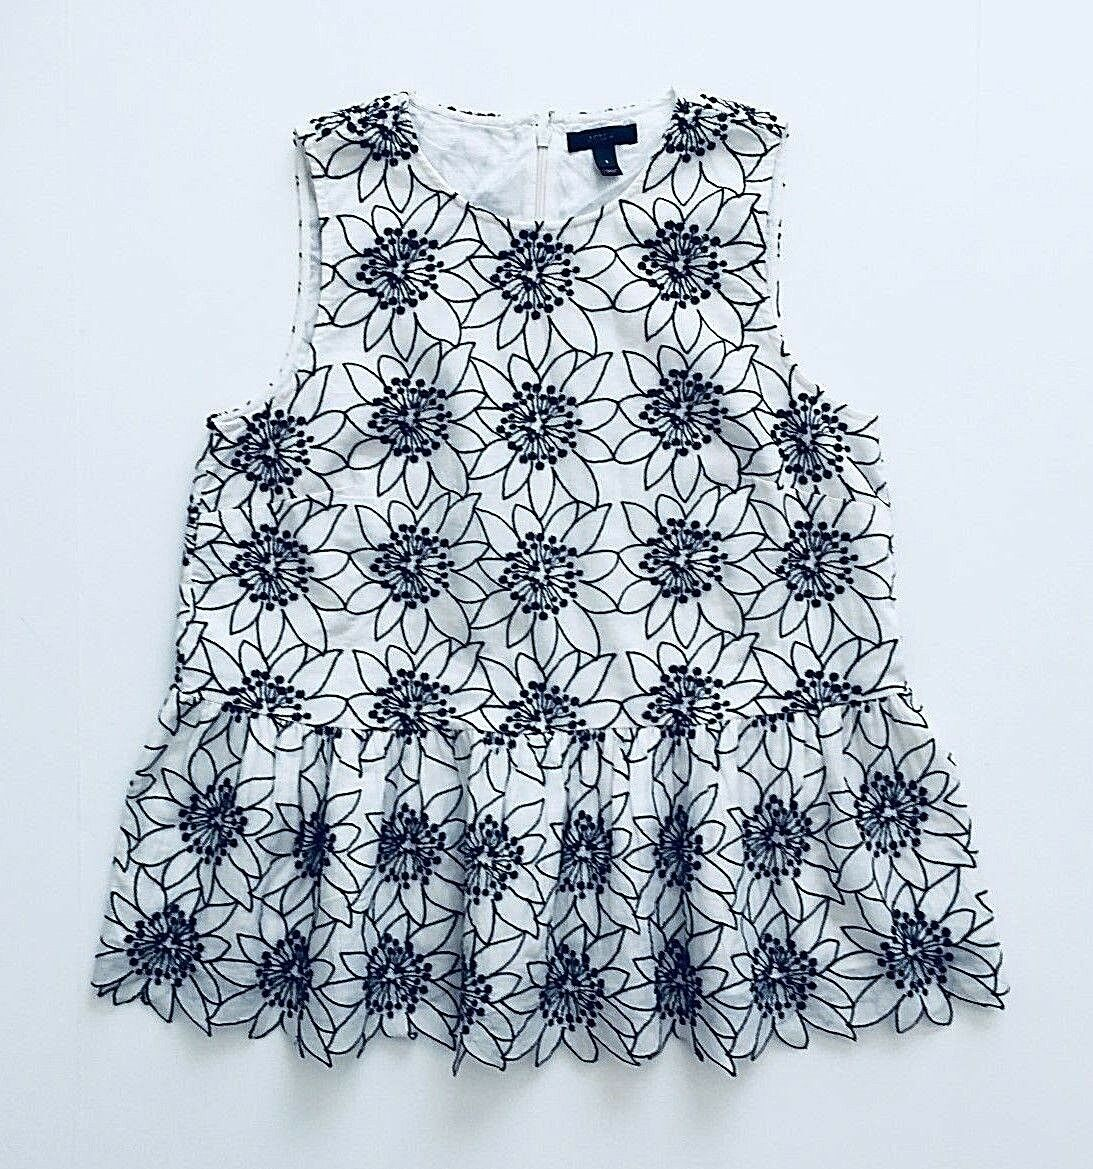 NWOT J Crew Embroidered floral top Size M Ivory Navy FA17 G8414